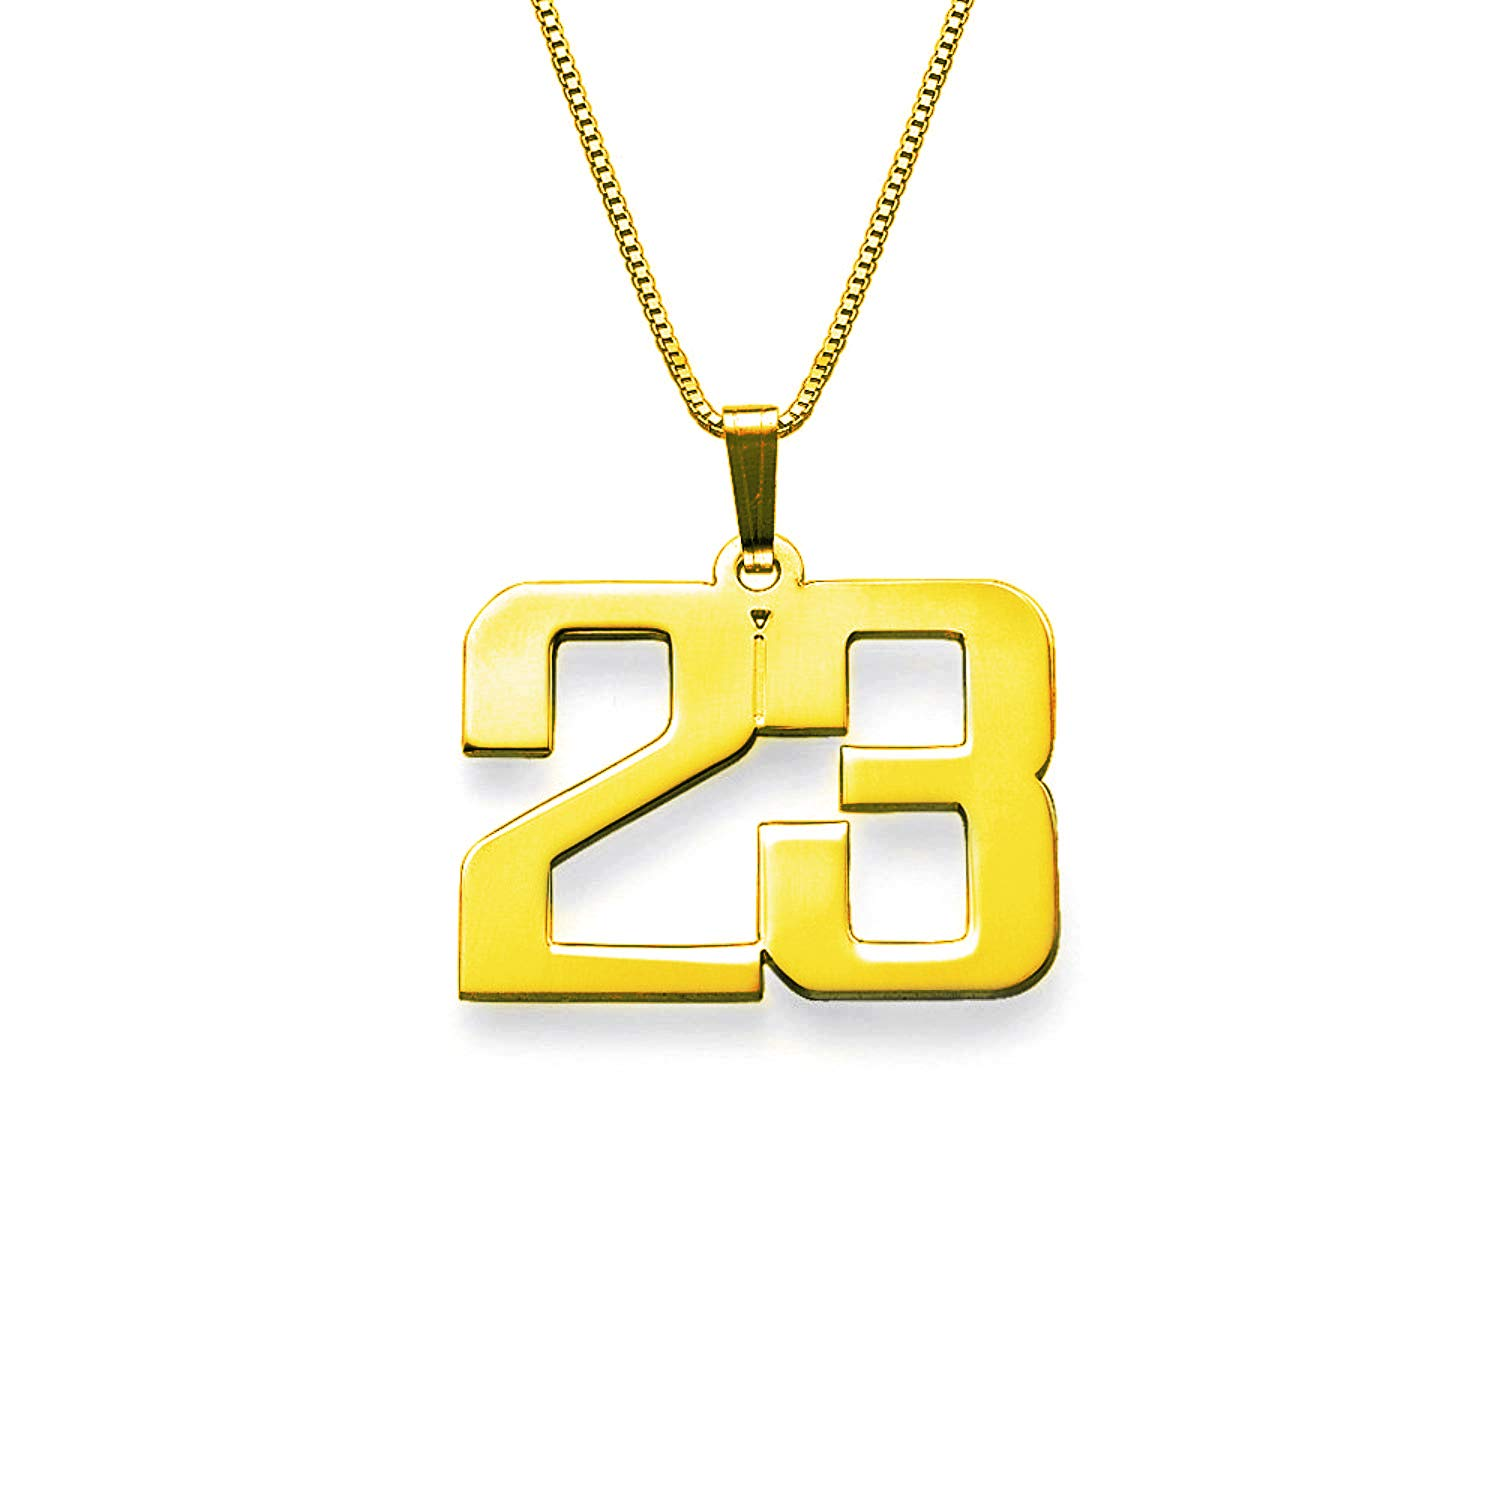 Laofu 925 Sterling Silver Customized Jewelry For Men Personalized Charm Number Necklace Gift For Him Hergold Amazon Com